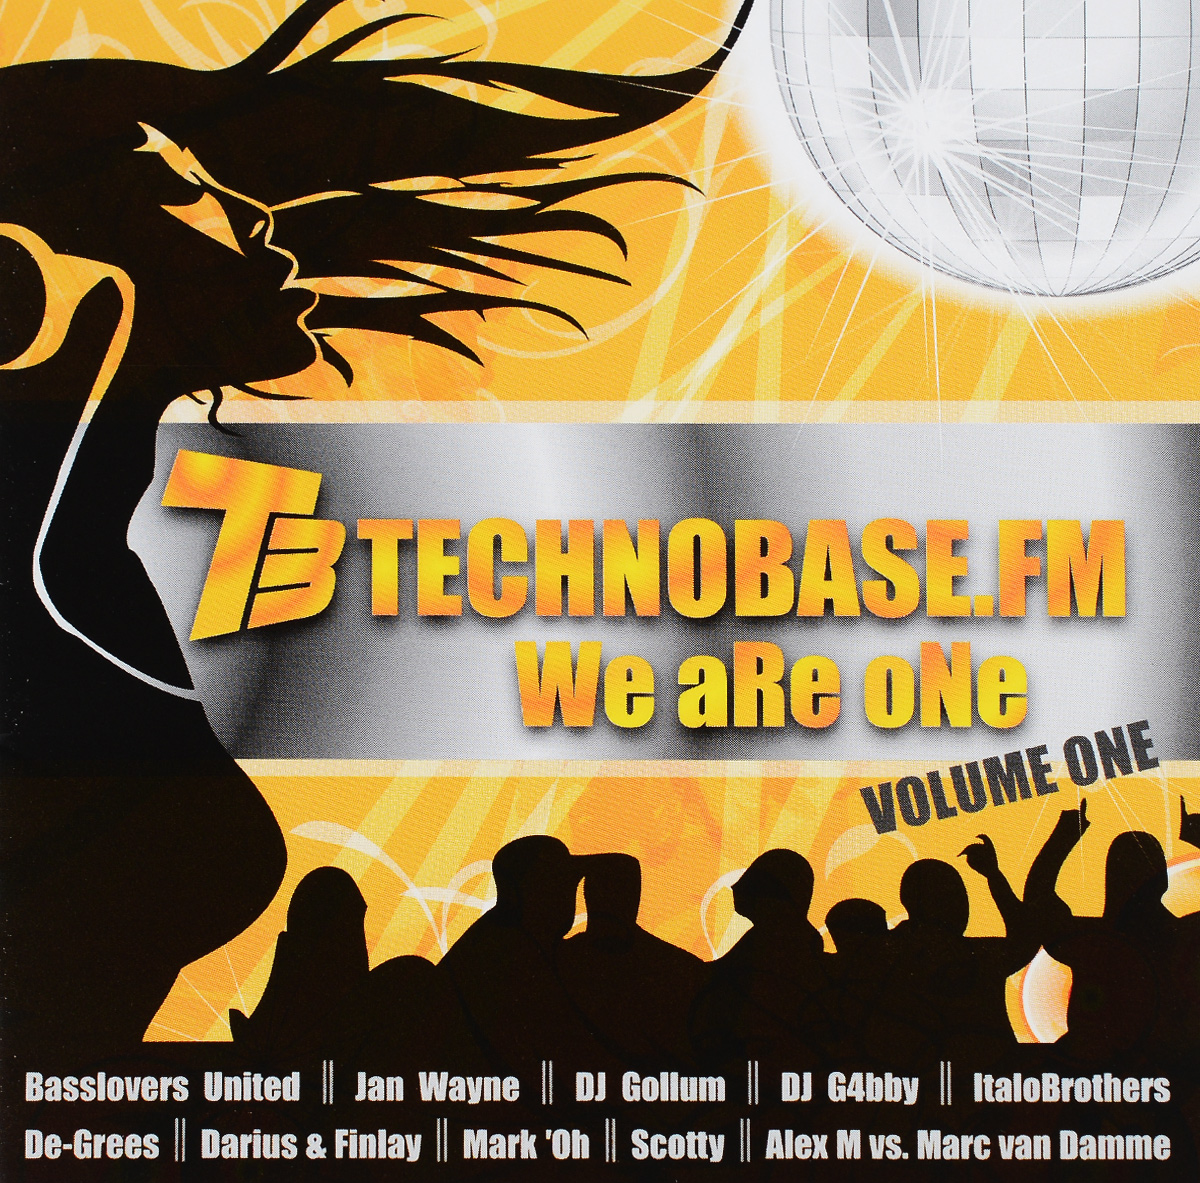 DJ G4bby,Ян Ване,De-Grees,Italobrothers,Dj Gollum,Dj Lanai,Ti-Mo,Dan Winter,Dj Somy,Lazy Monkeys Technobase.FM. We Are One. Volume 1 (2 CD) dj muggs dj muggs the soul assassins chapter 1 picture disc